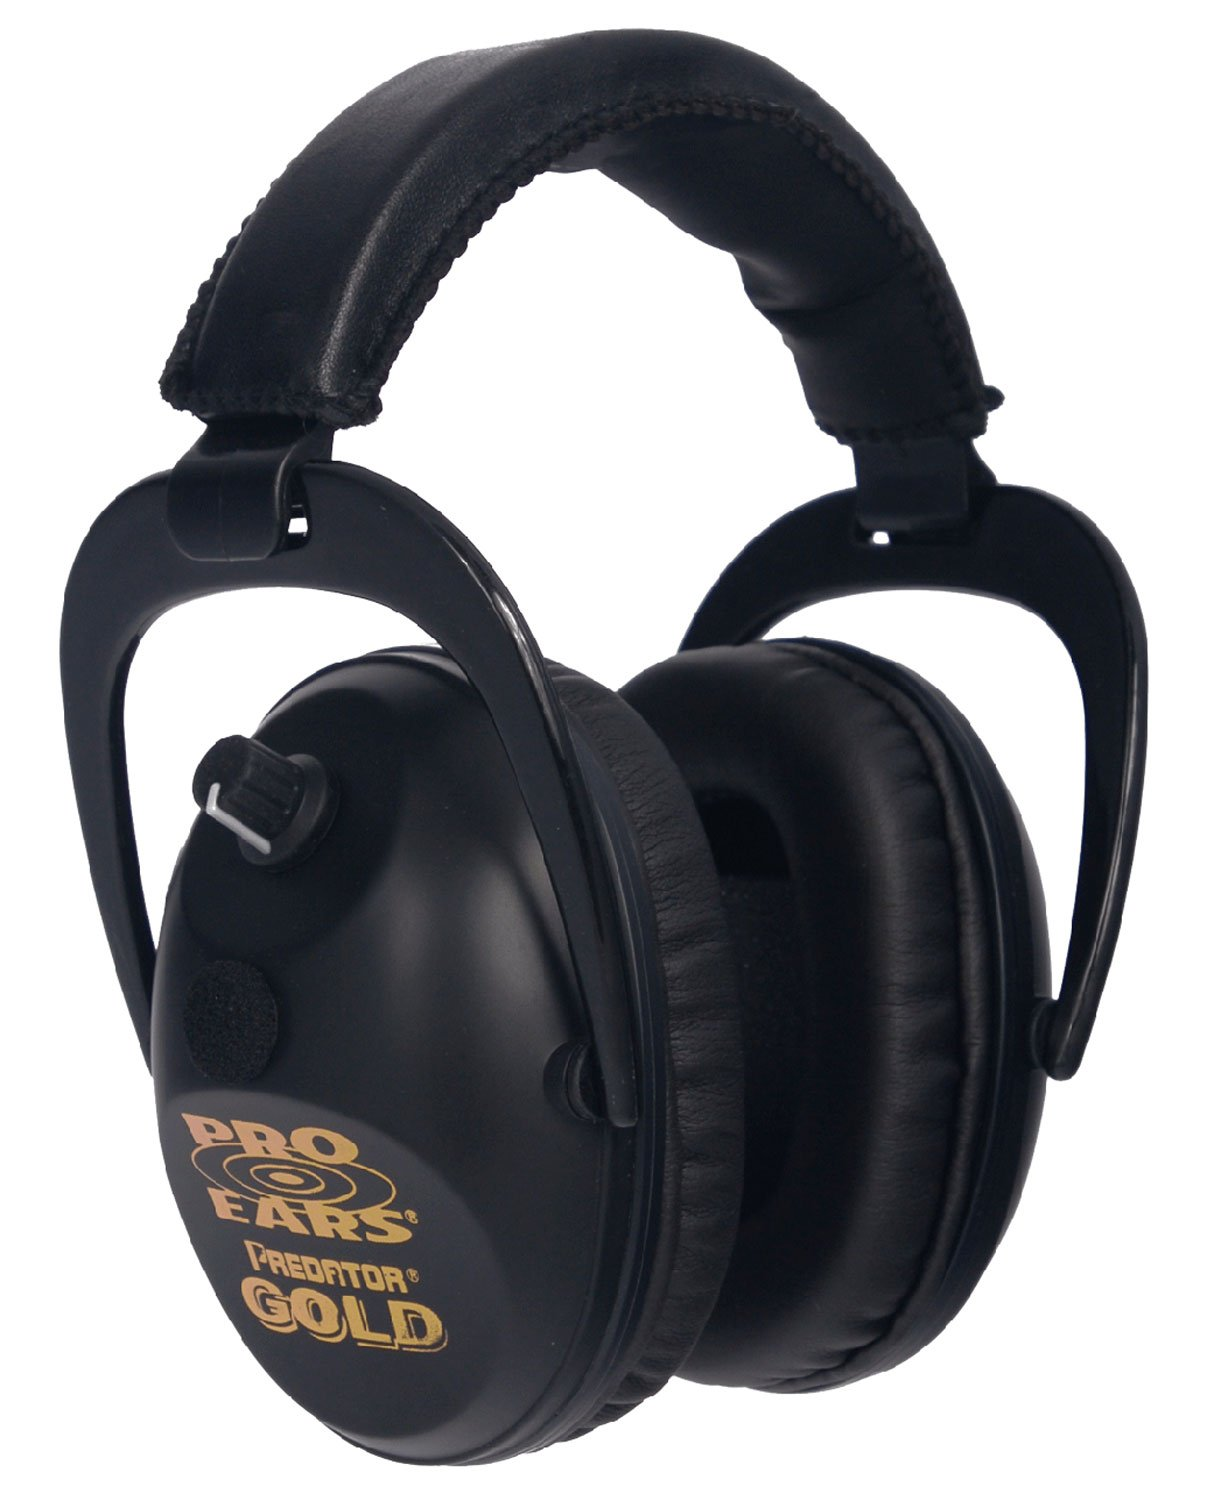 Pro Ears - Predator  Gold - Hearing Protection and Amplfication - NRR 26 - Contoured Ear Muffs - Black by Pro Ears